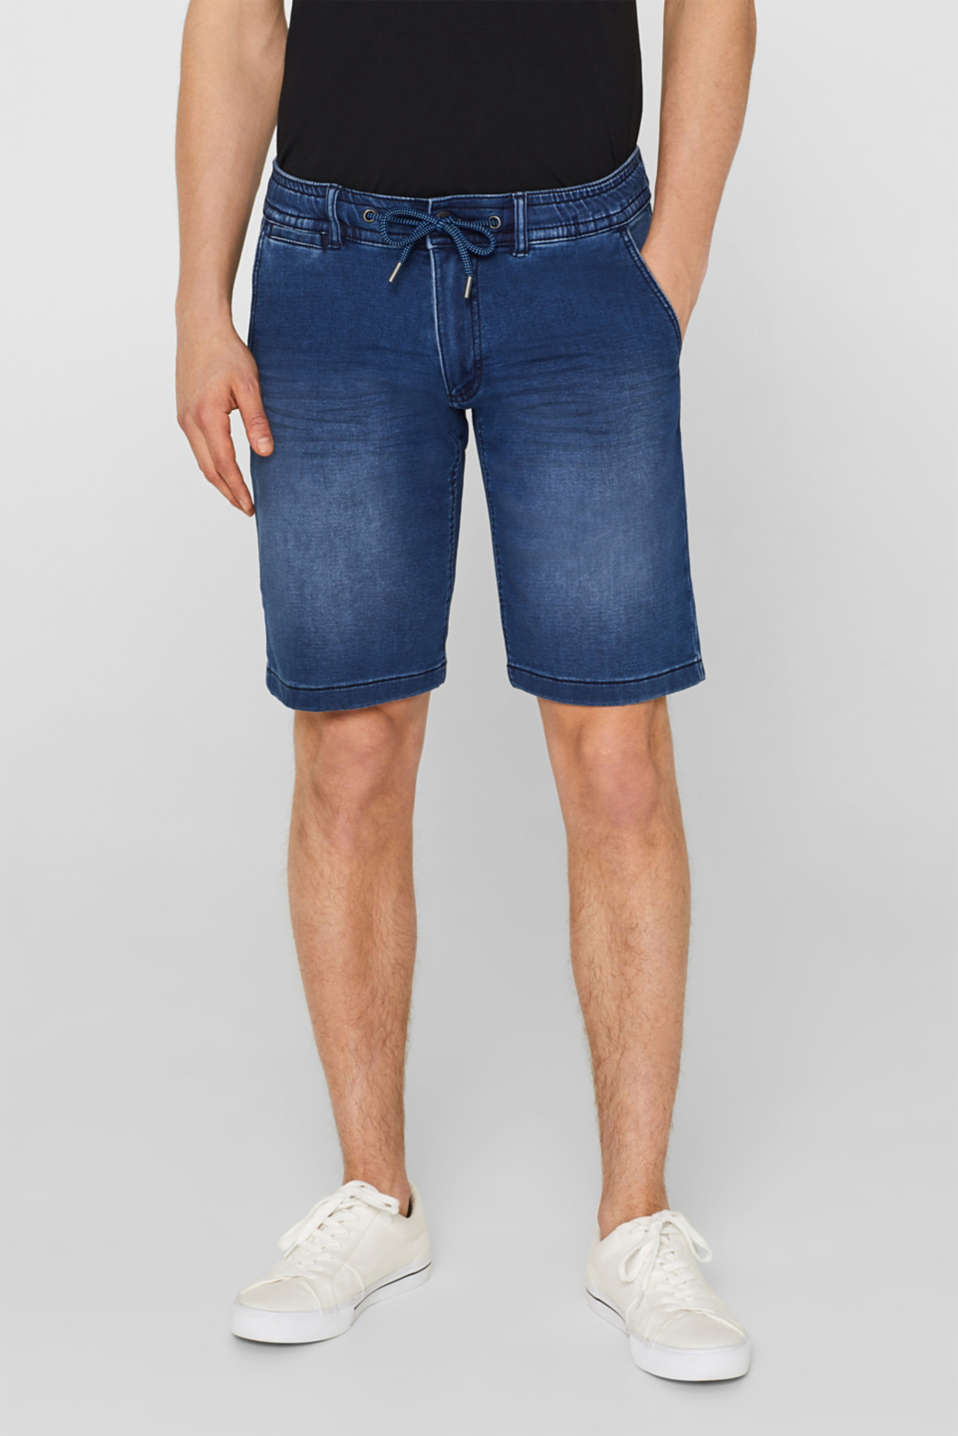 edc - Stretch-Jeansshorts in Jogger-Qualität